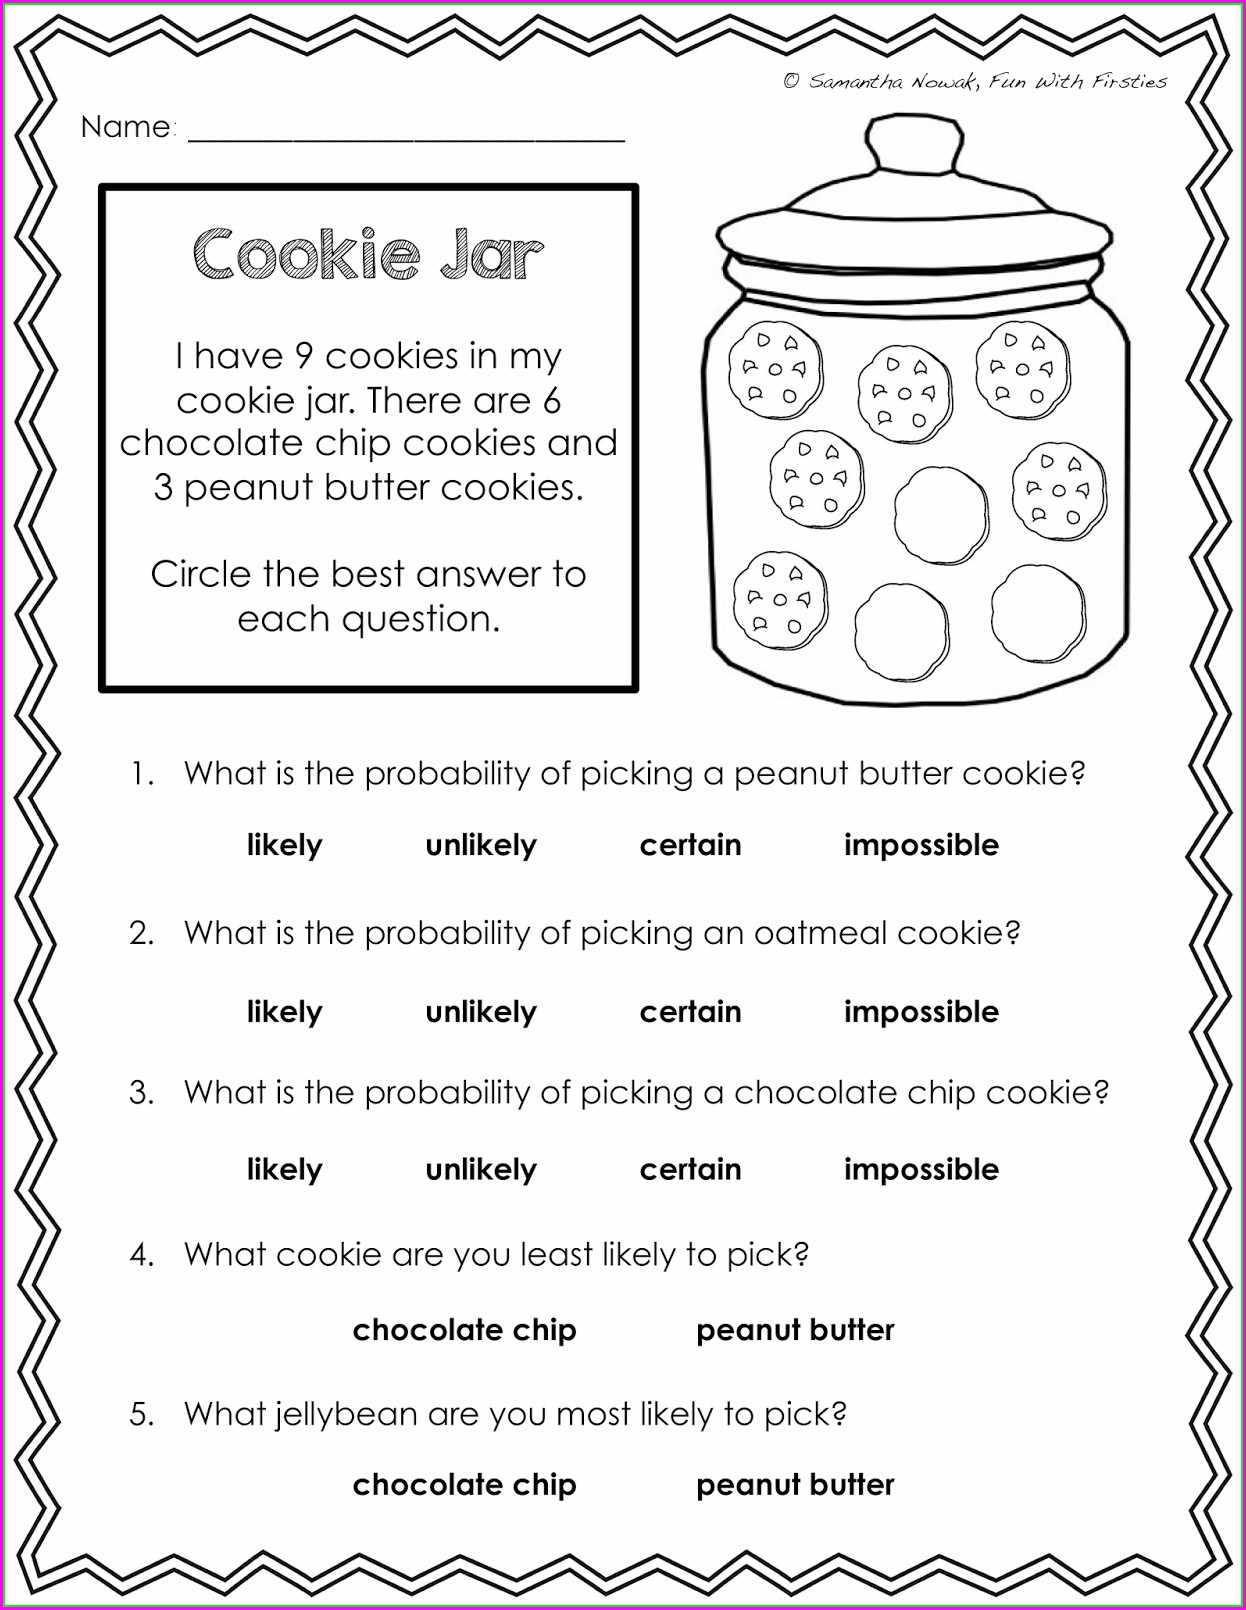 Fun Math Worksheets For Elementary Students